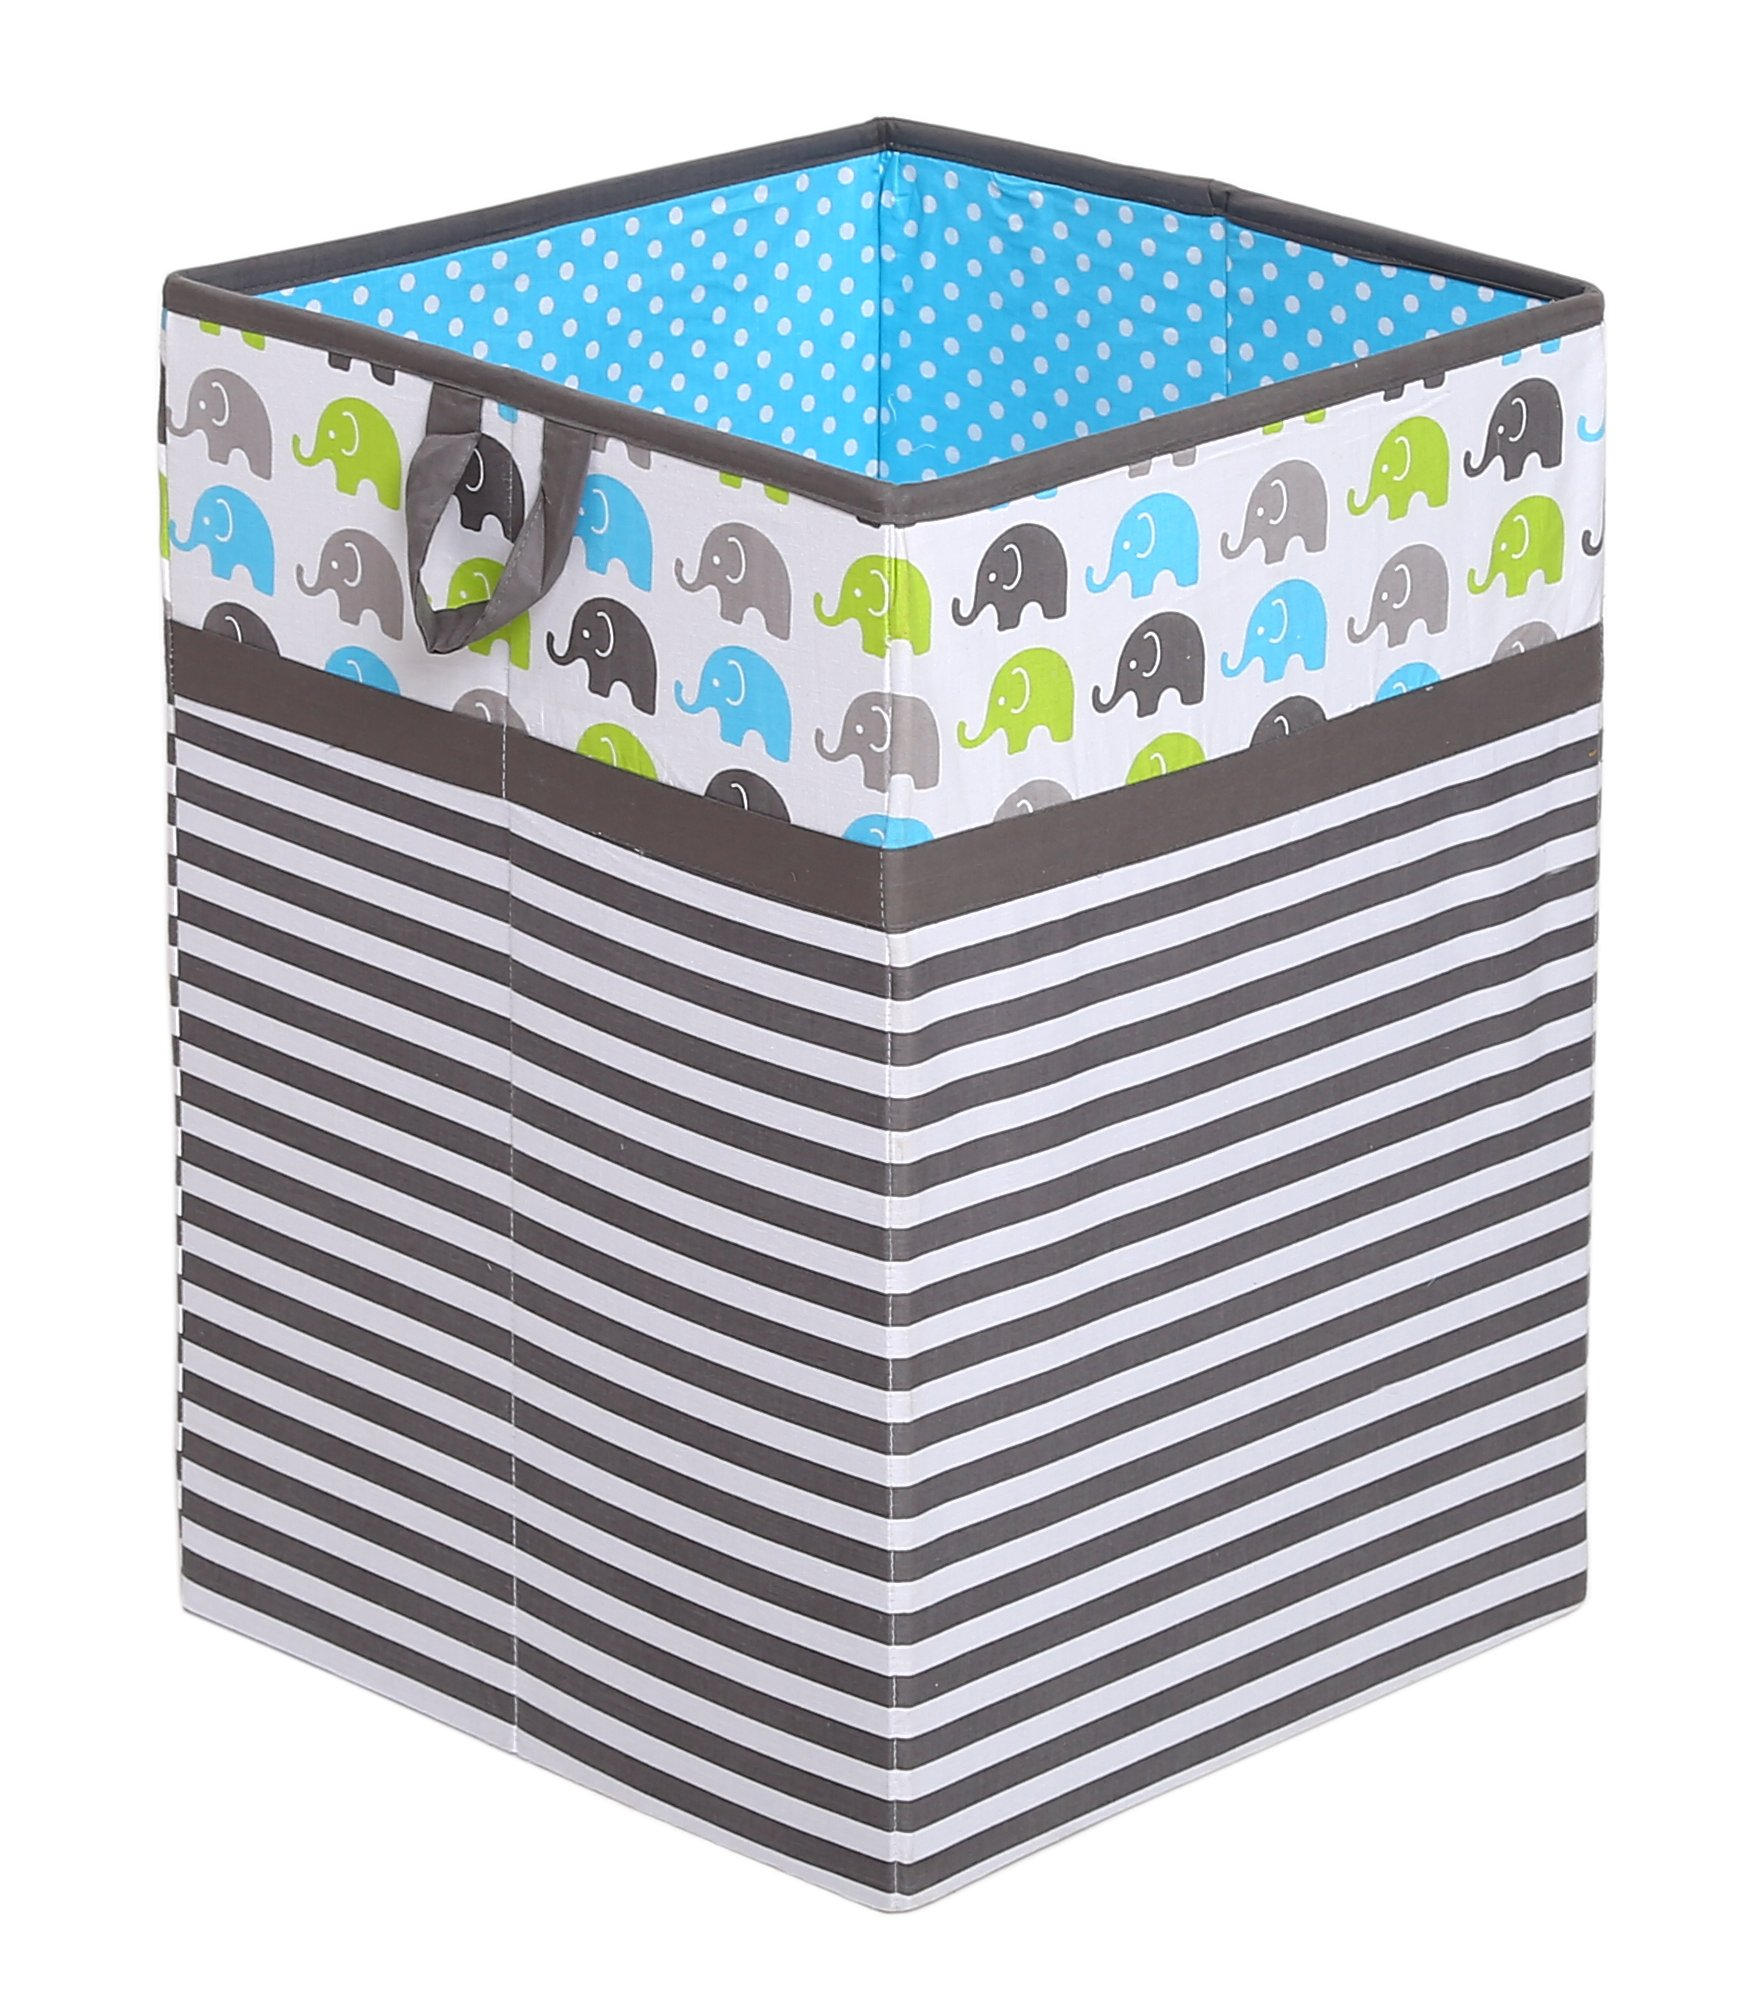 Bacati Collapsible Storage Hamper, Elephants, Aqua/Lime/Grey, One Size by Bacati